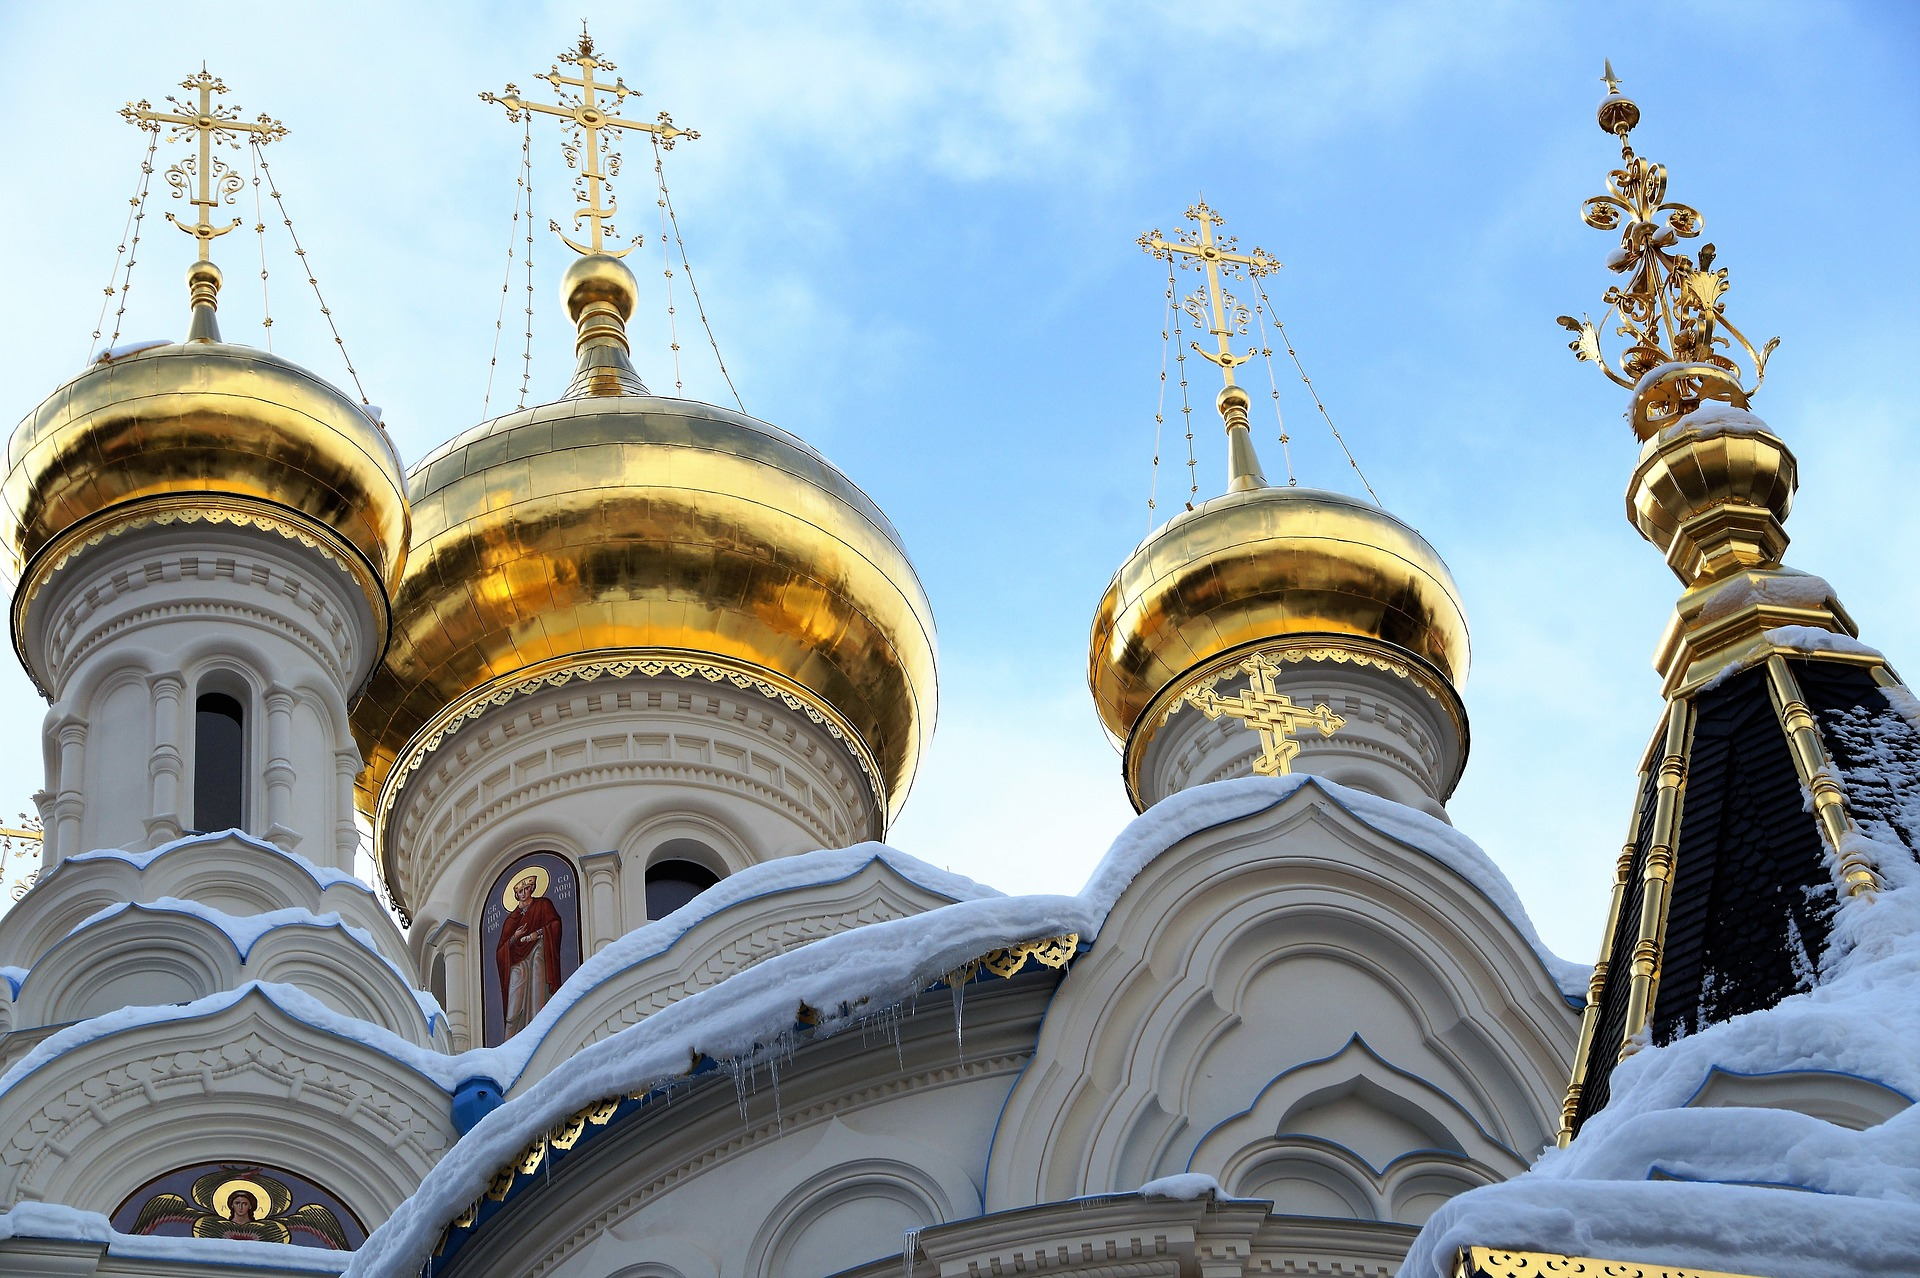 The spires of the Russian Orthodox Church in Karlovy Vary